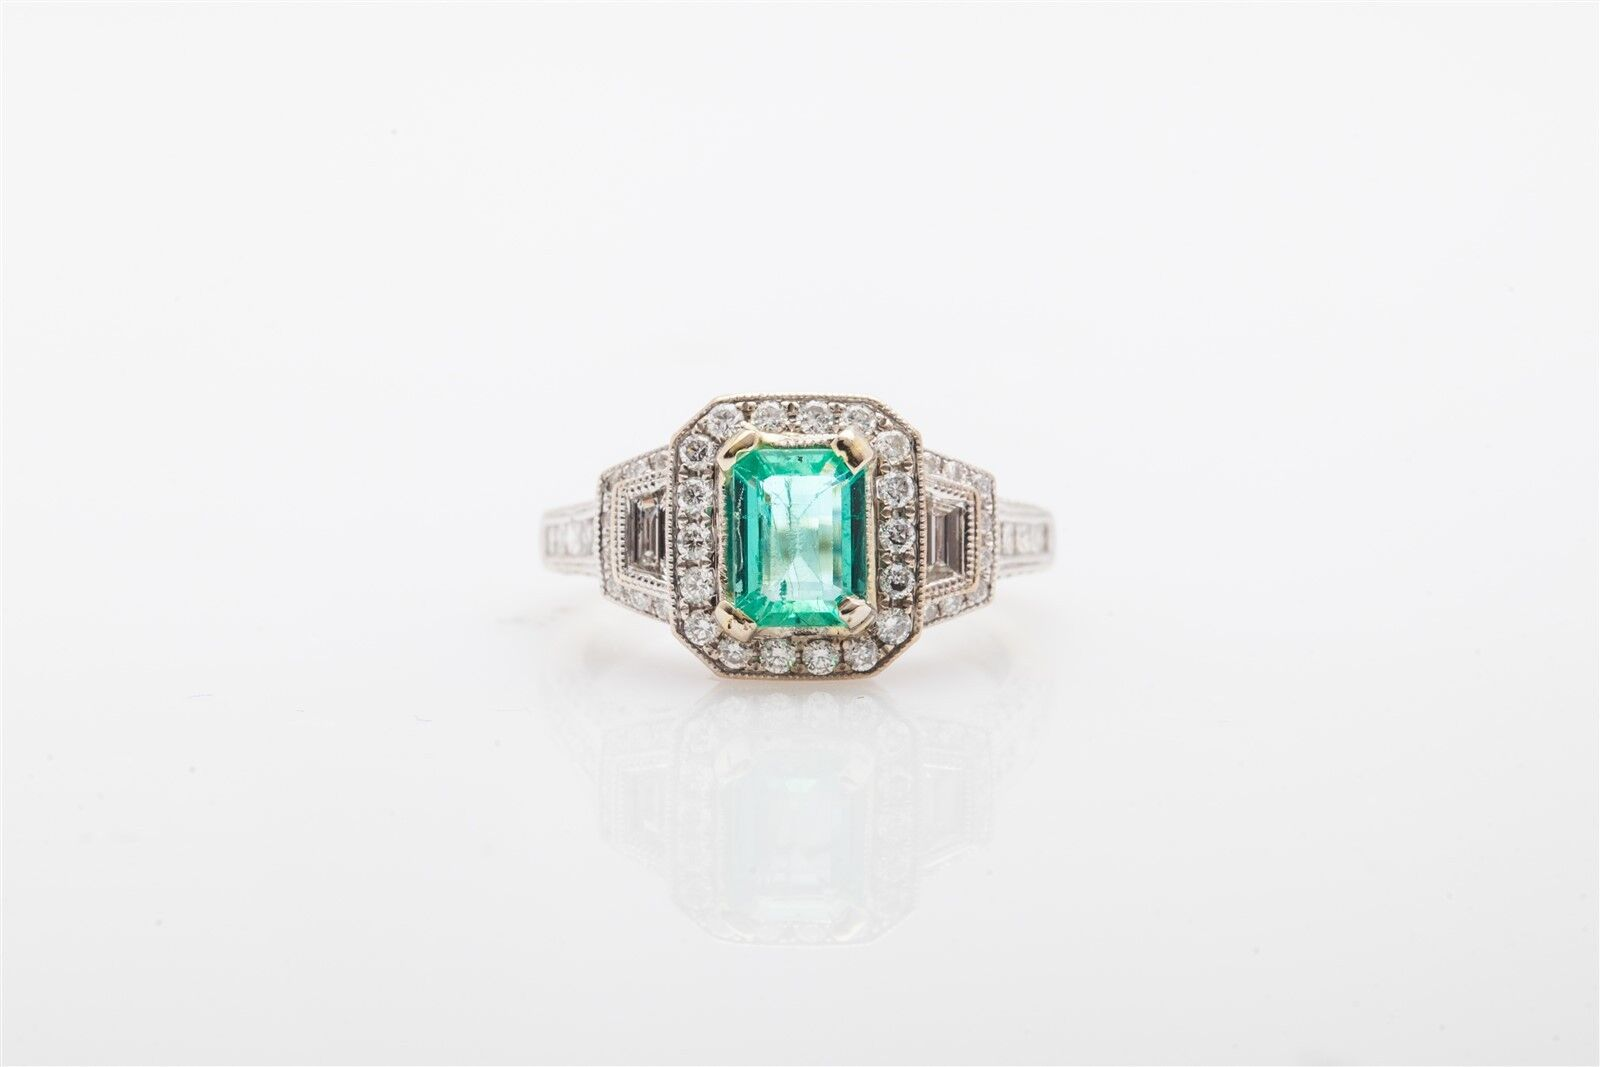 00a768f7f6e58 Signed S 8000 Kashi Ring Wedding gold 14k Diamond Emerald Colombian ...